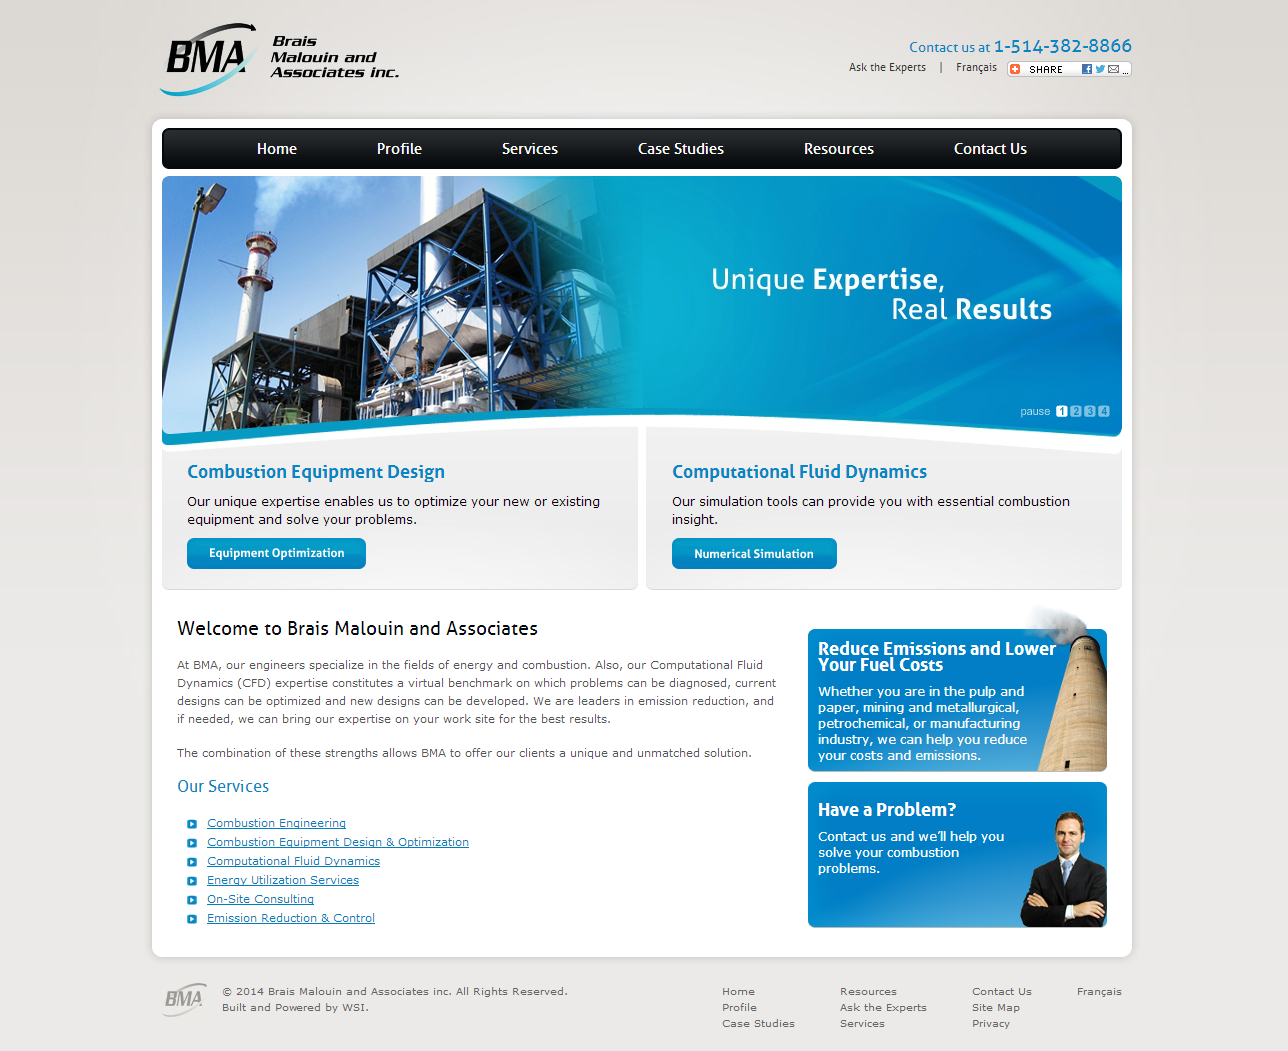 Brais, Malouin & Associates (BMA)